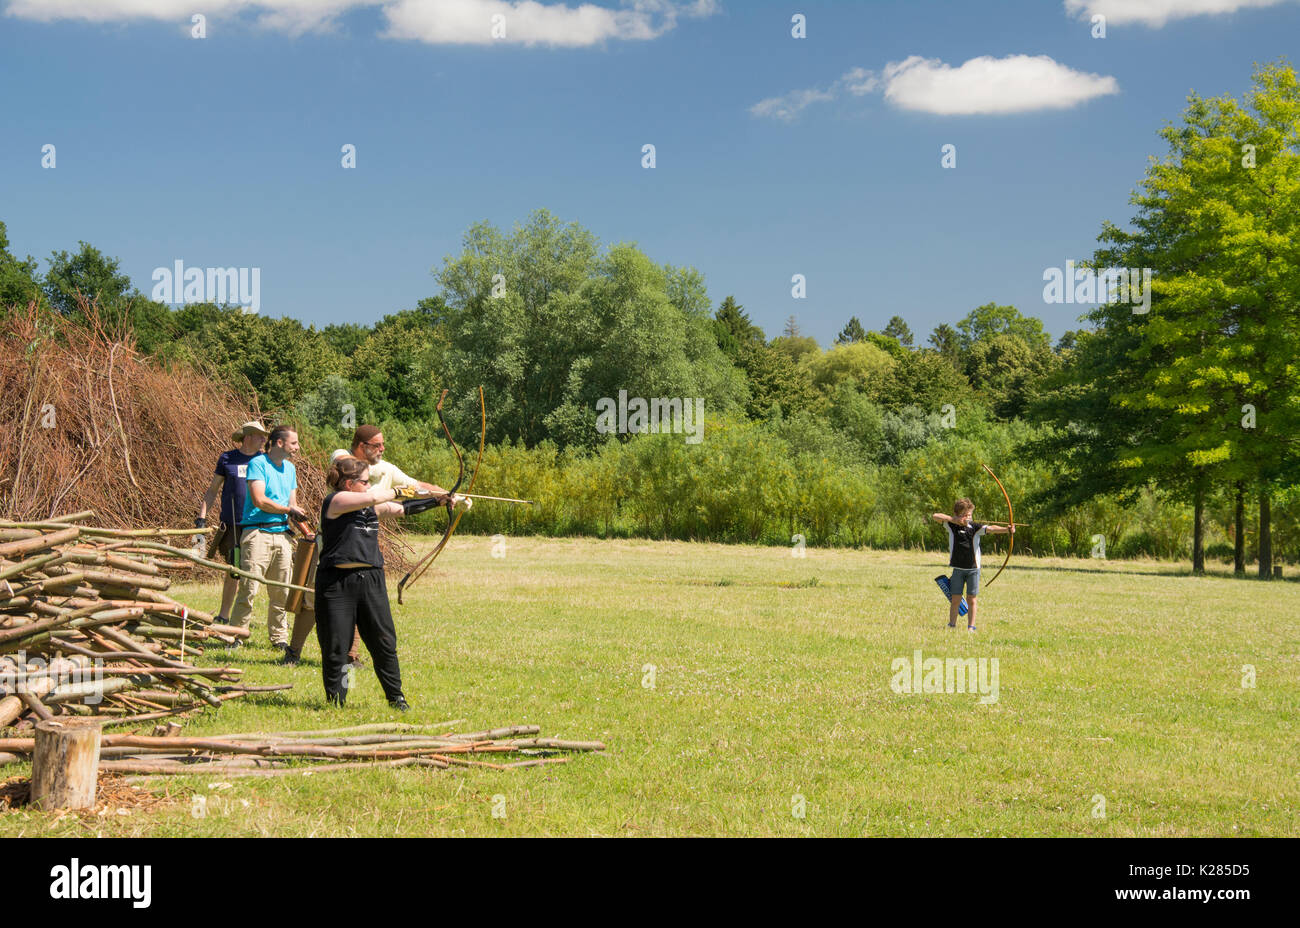 Archers take part in re-enacting life in a medieval Slav community at the Oldenburger Wallmuseum in Oldenburg-in-Holstein, Germany - Stock Image